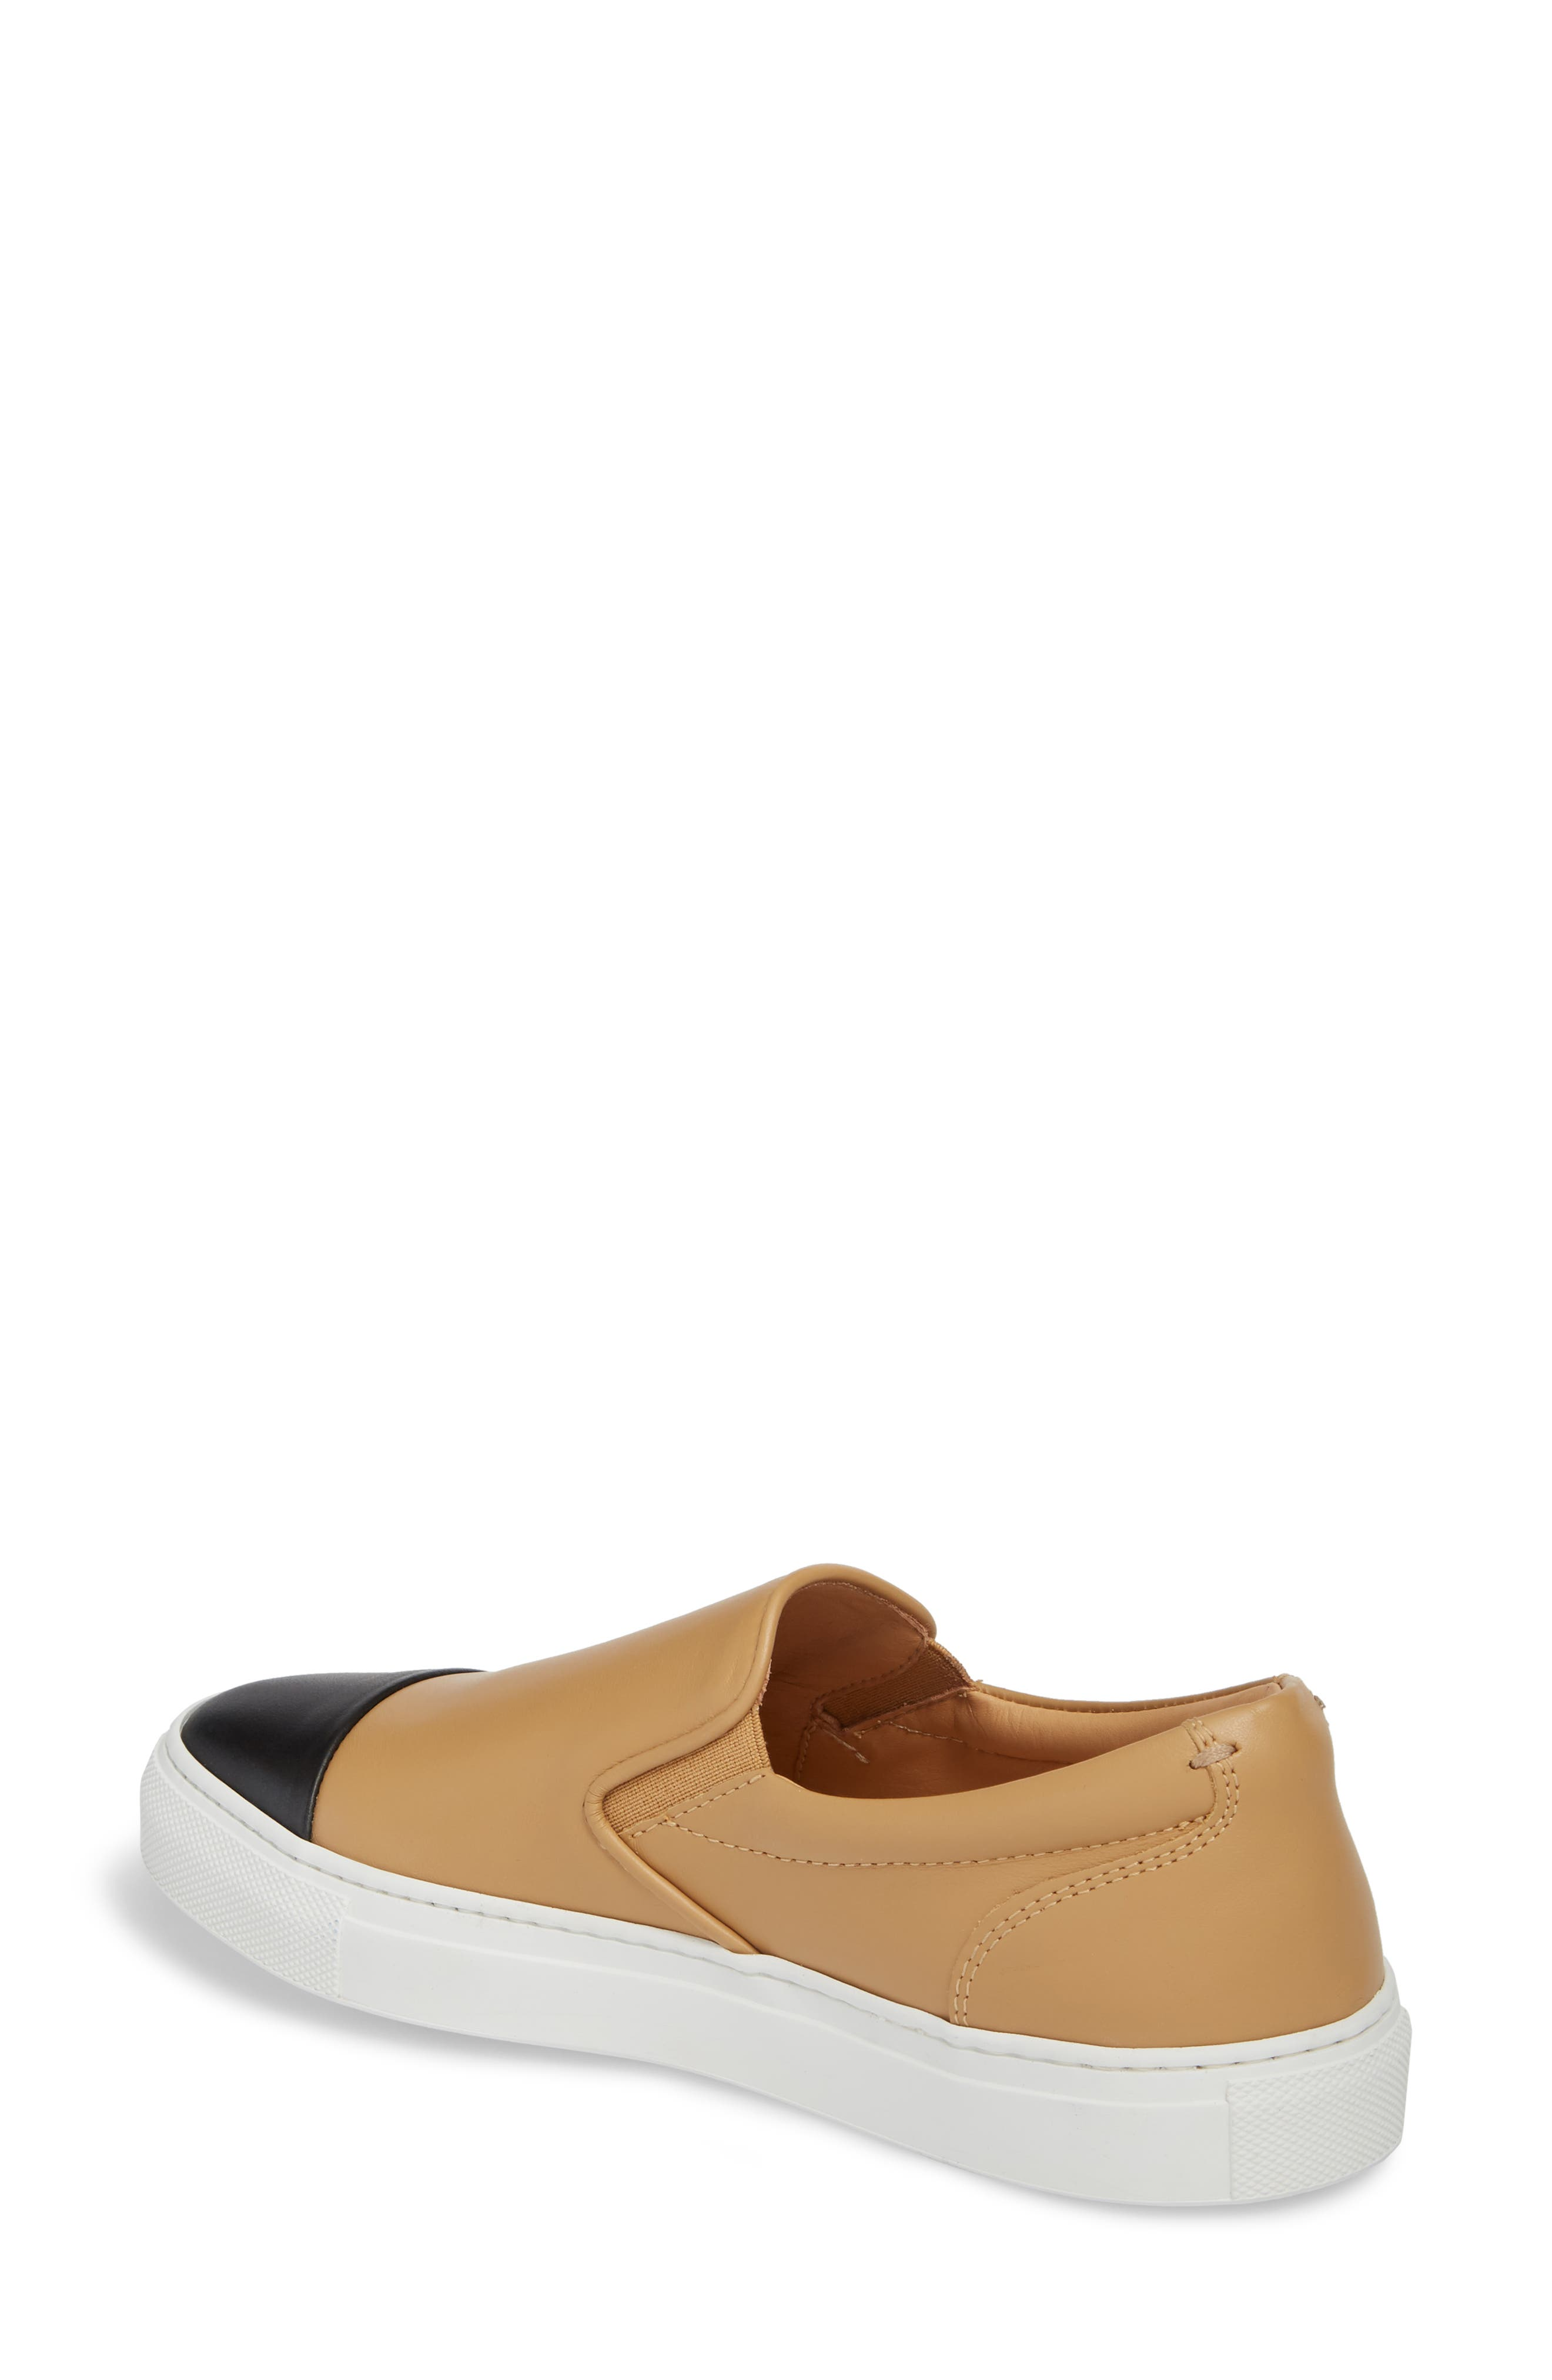 Wooster Cap Toe Slip-On Sneaker,                             Alternate thumbnail 2, color,                             Almond